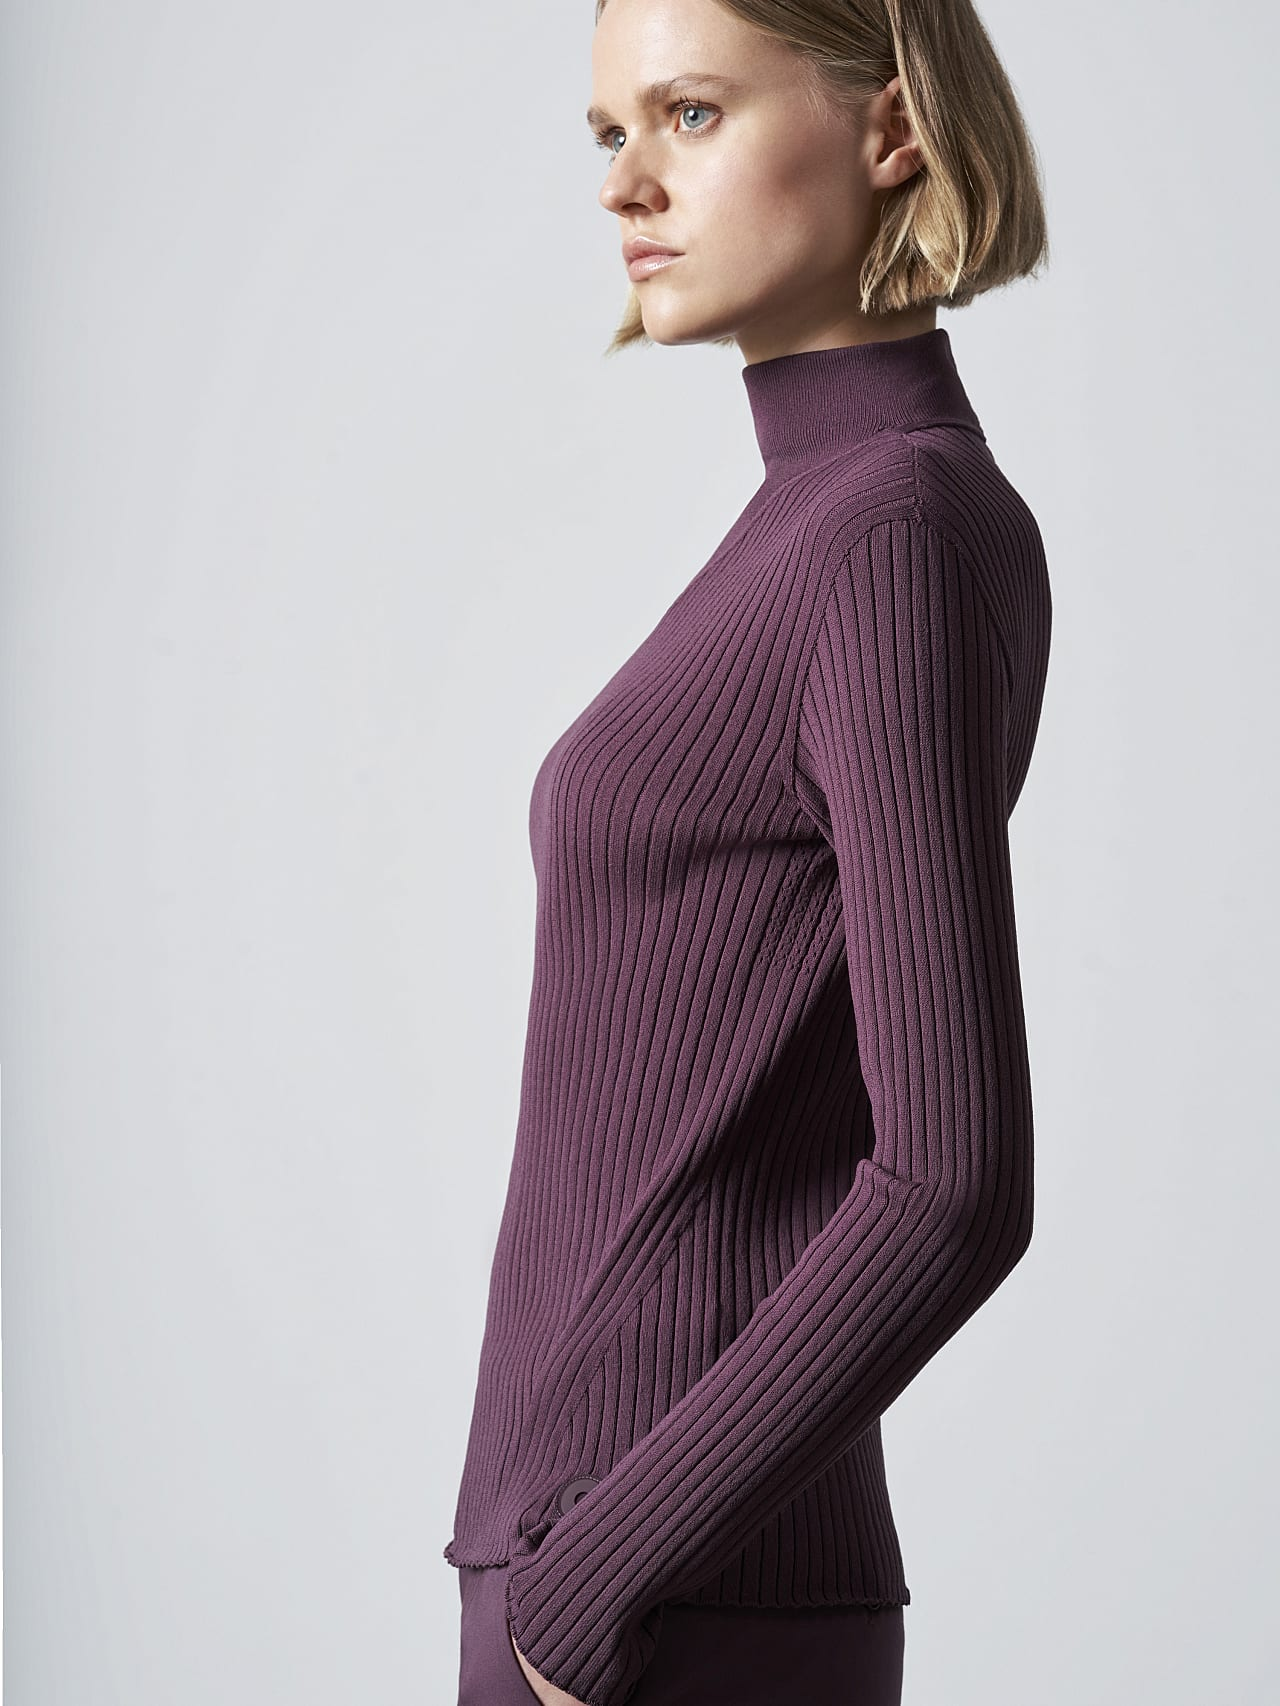 FAXEE V1.Y5.02 Seamless 3D Knit Mock-Neck Jumper Burgundy Right Alpha Tauri